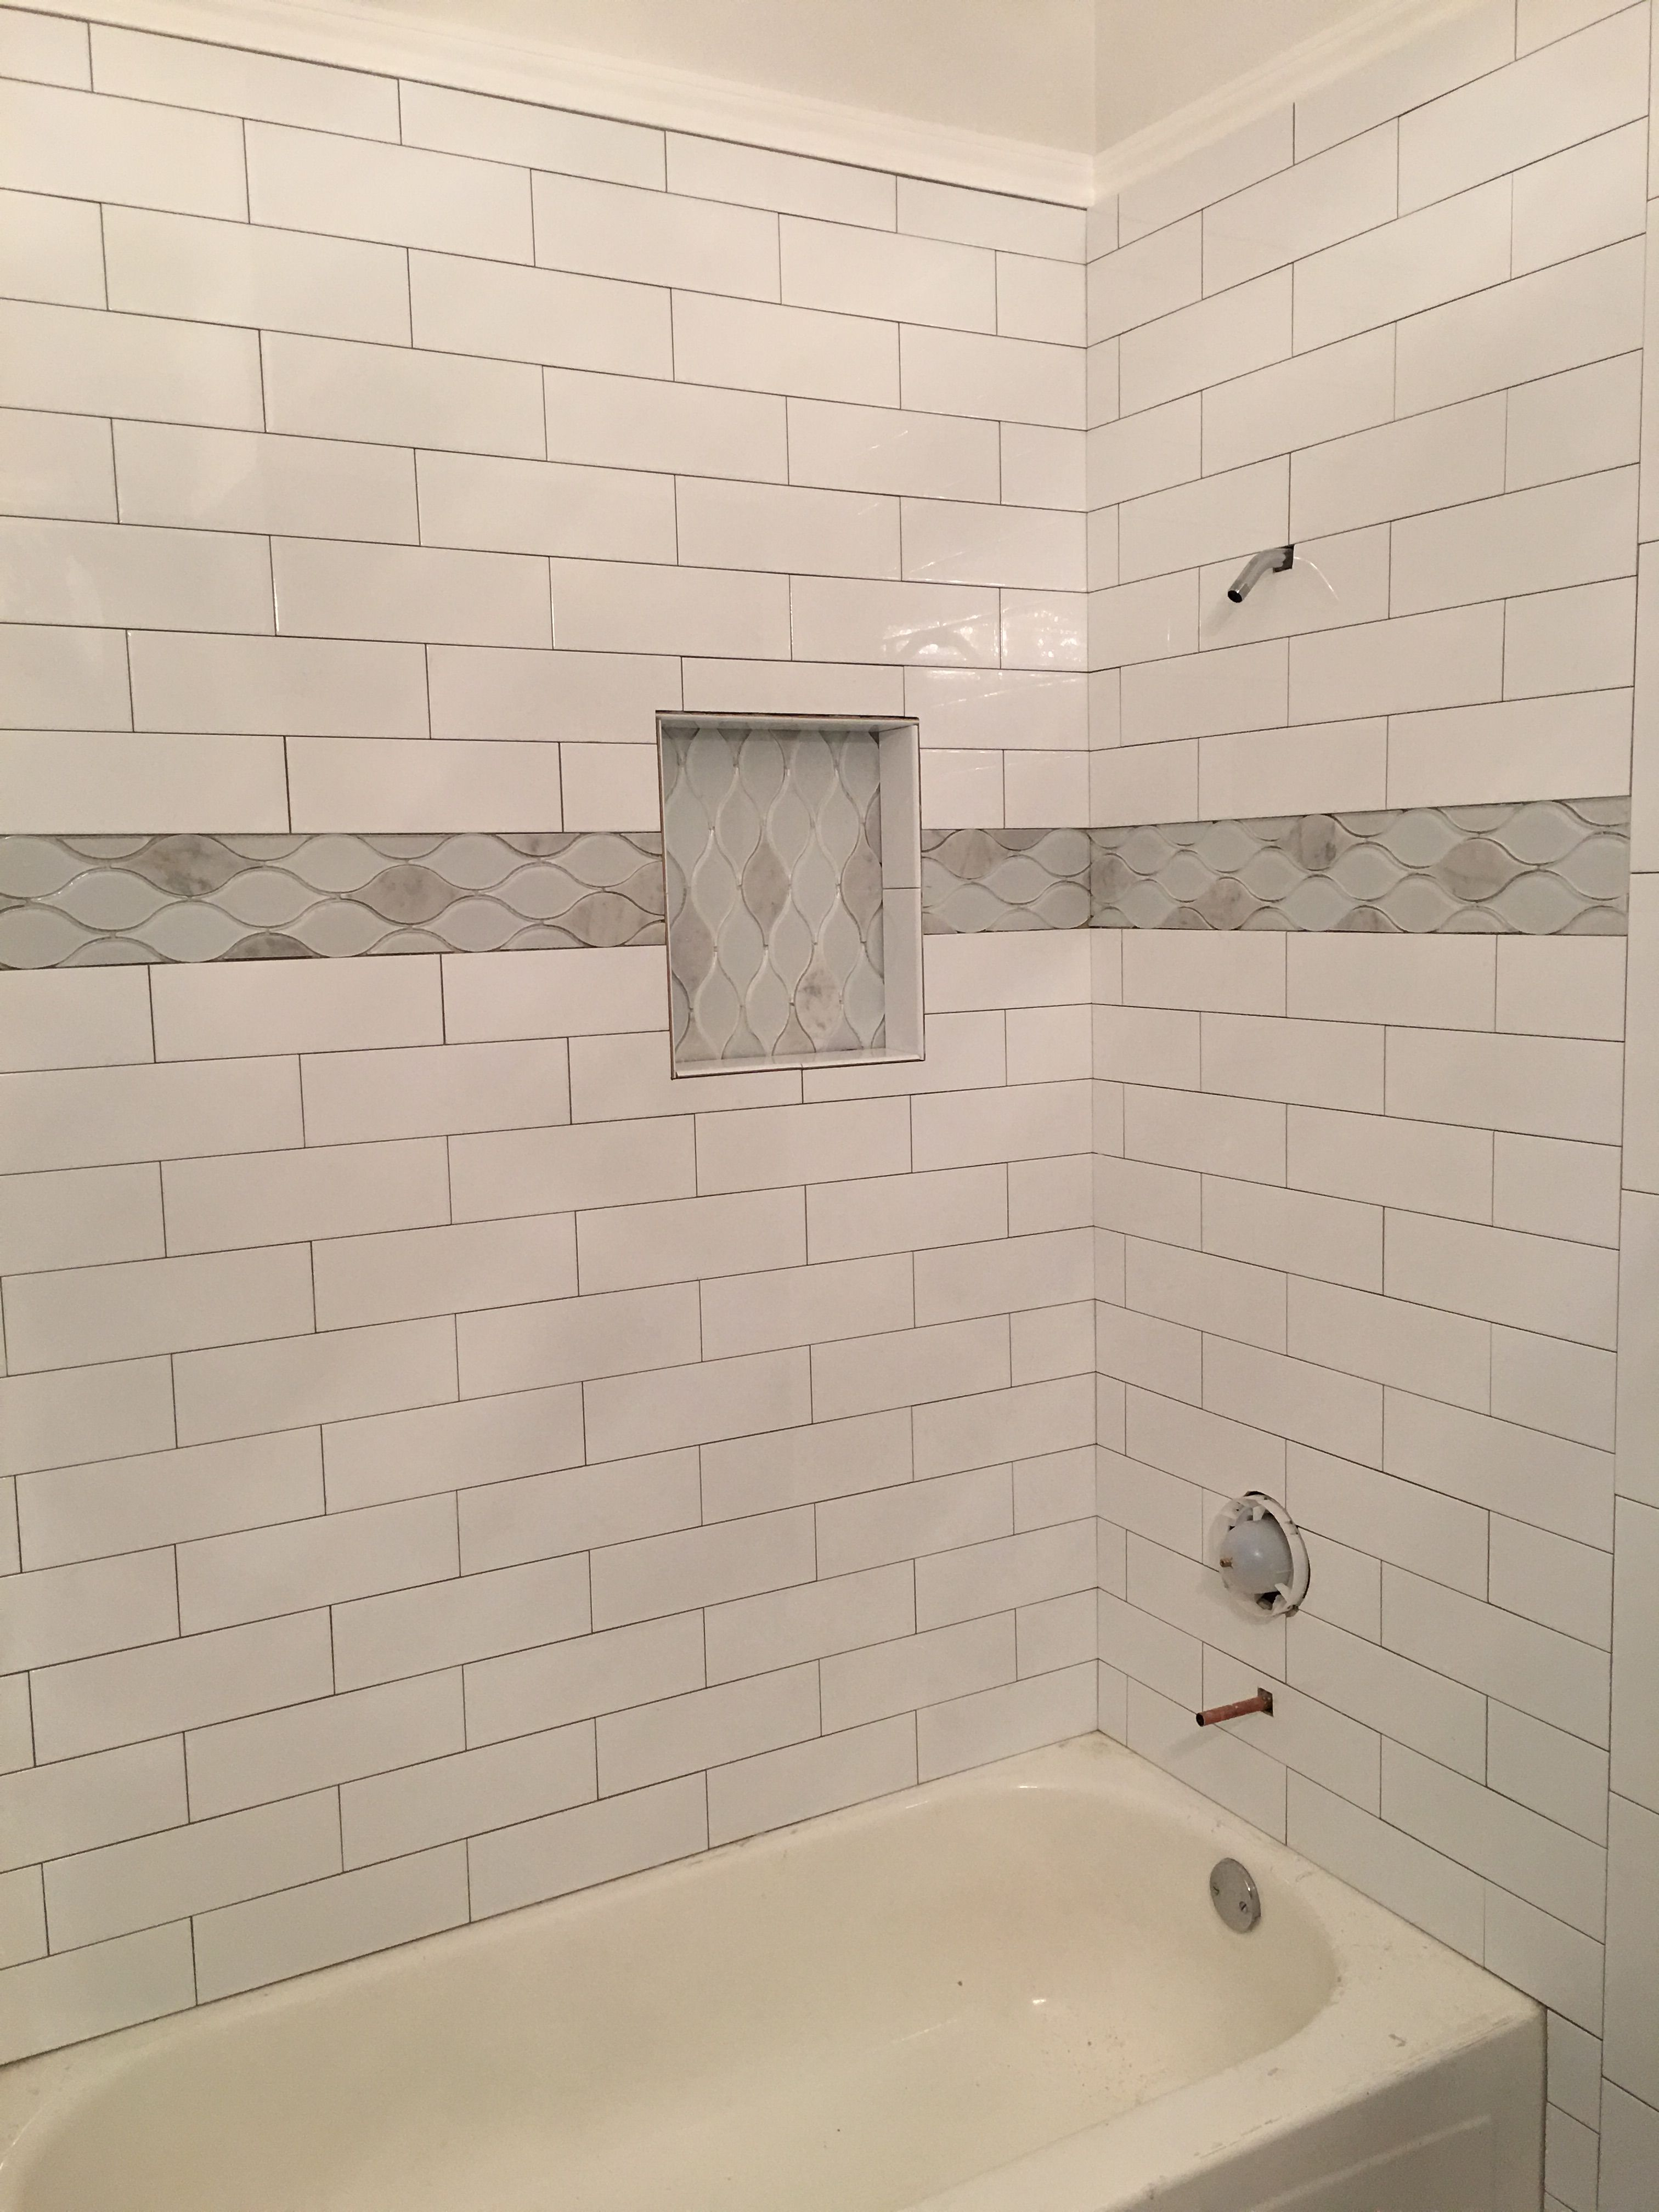 4x16 Subway Tile White Tile Shower White Subway Tile Shower Subway Tile Bathroom Shower